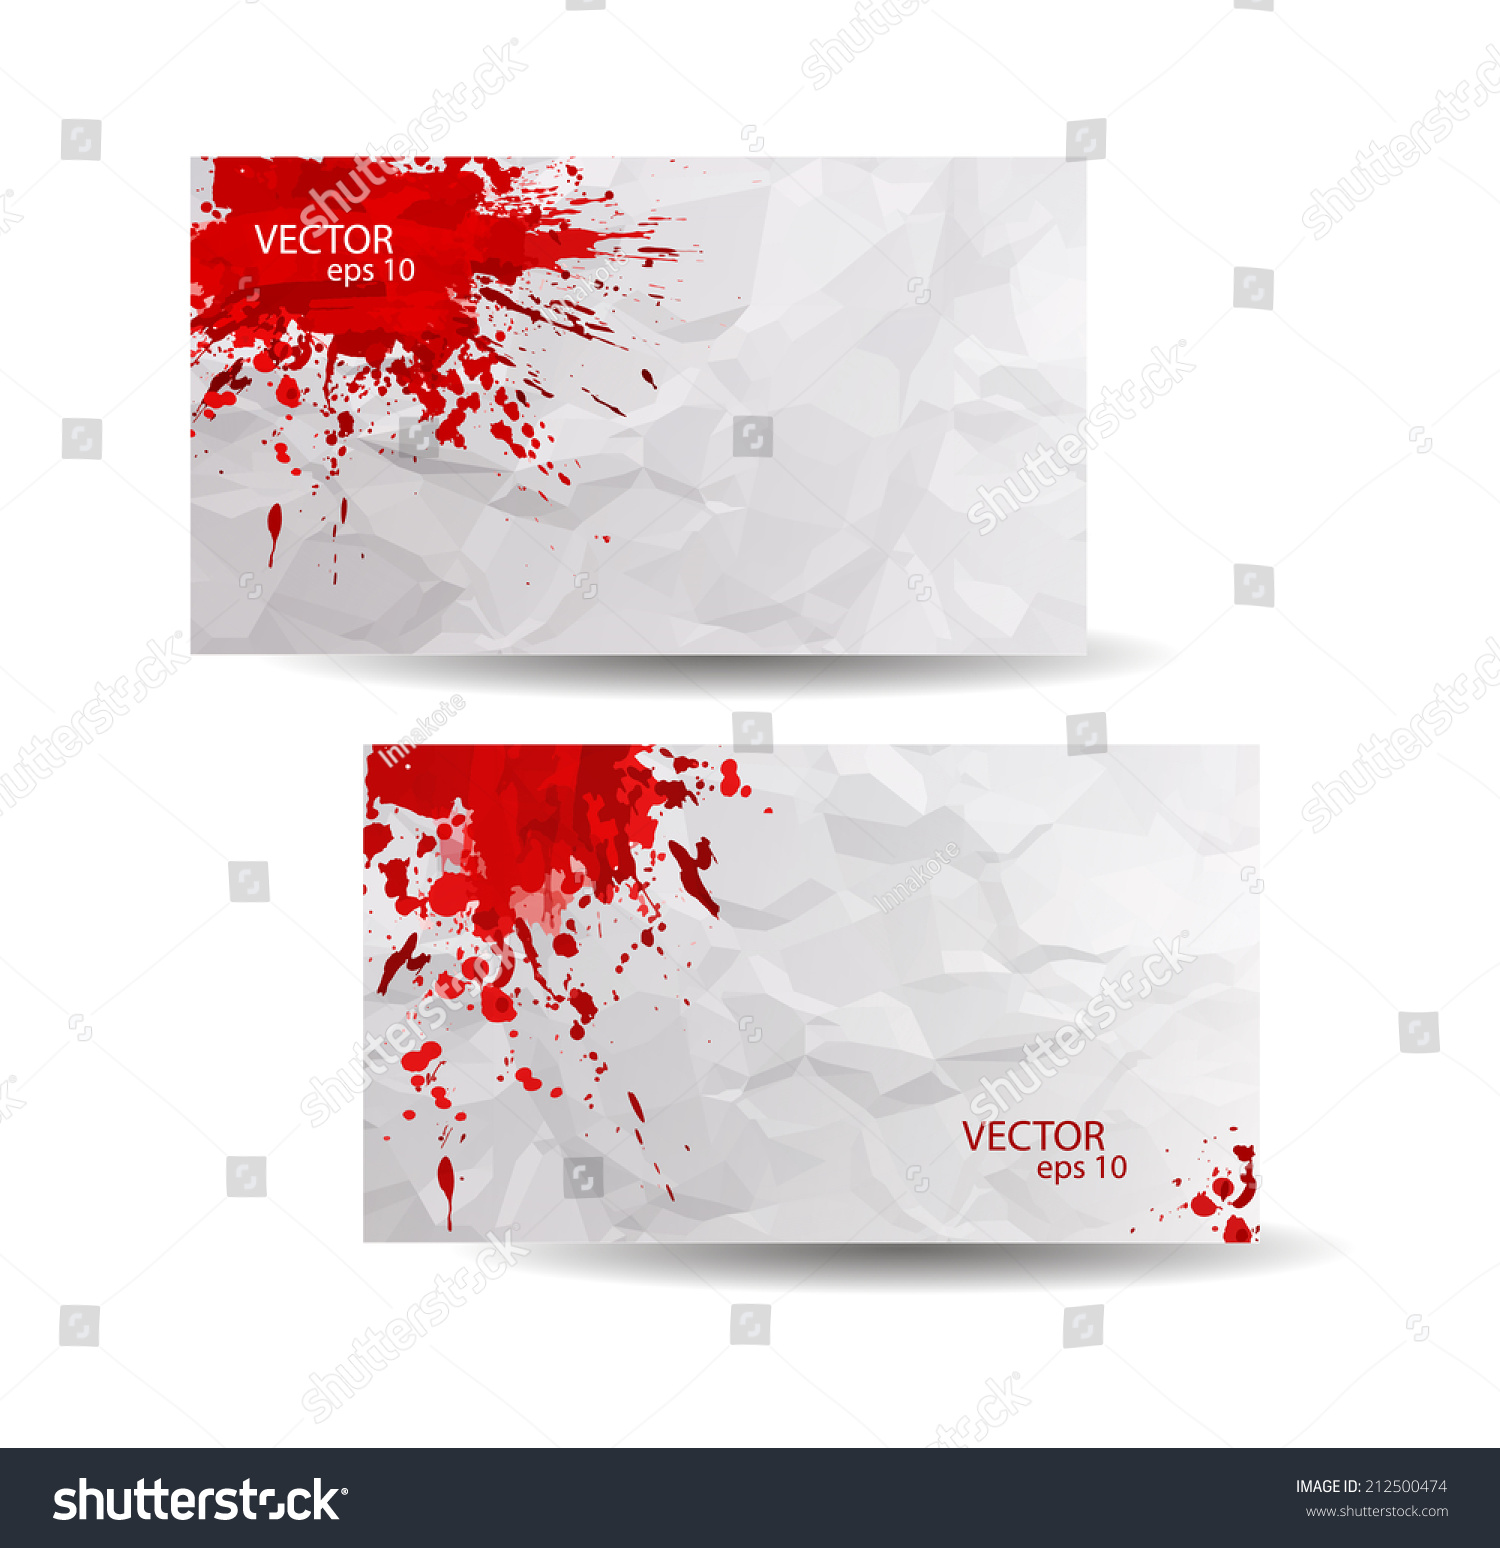 Business cards template red abstract spray stock vector 2018 business cards template with red abstract spray paint crumpled paper background hand drawn colourmoves